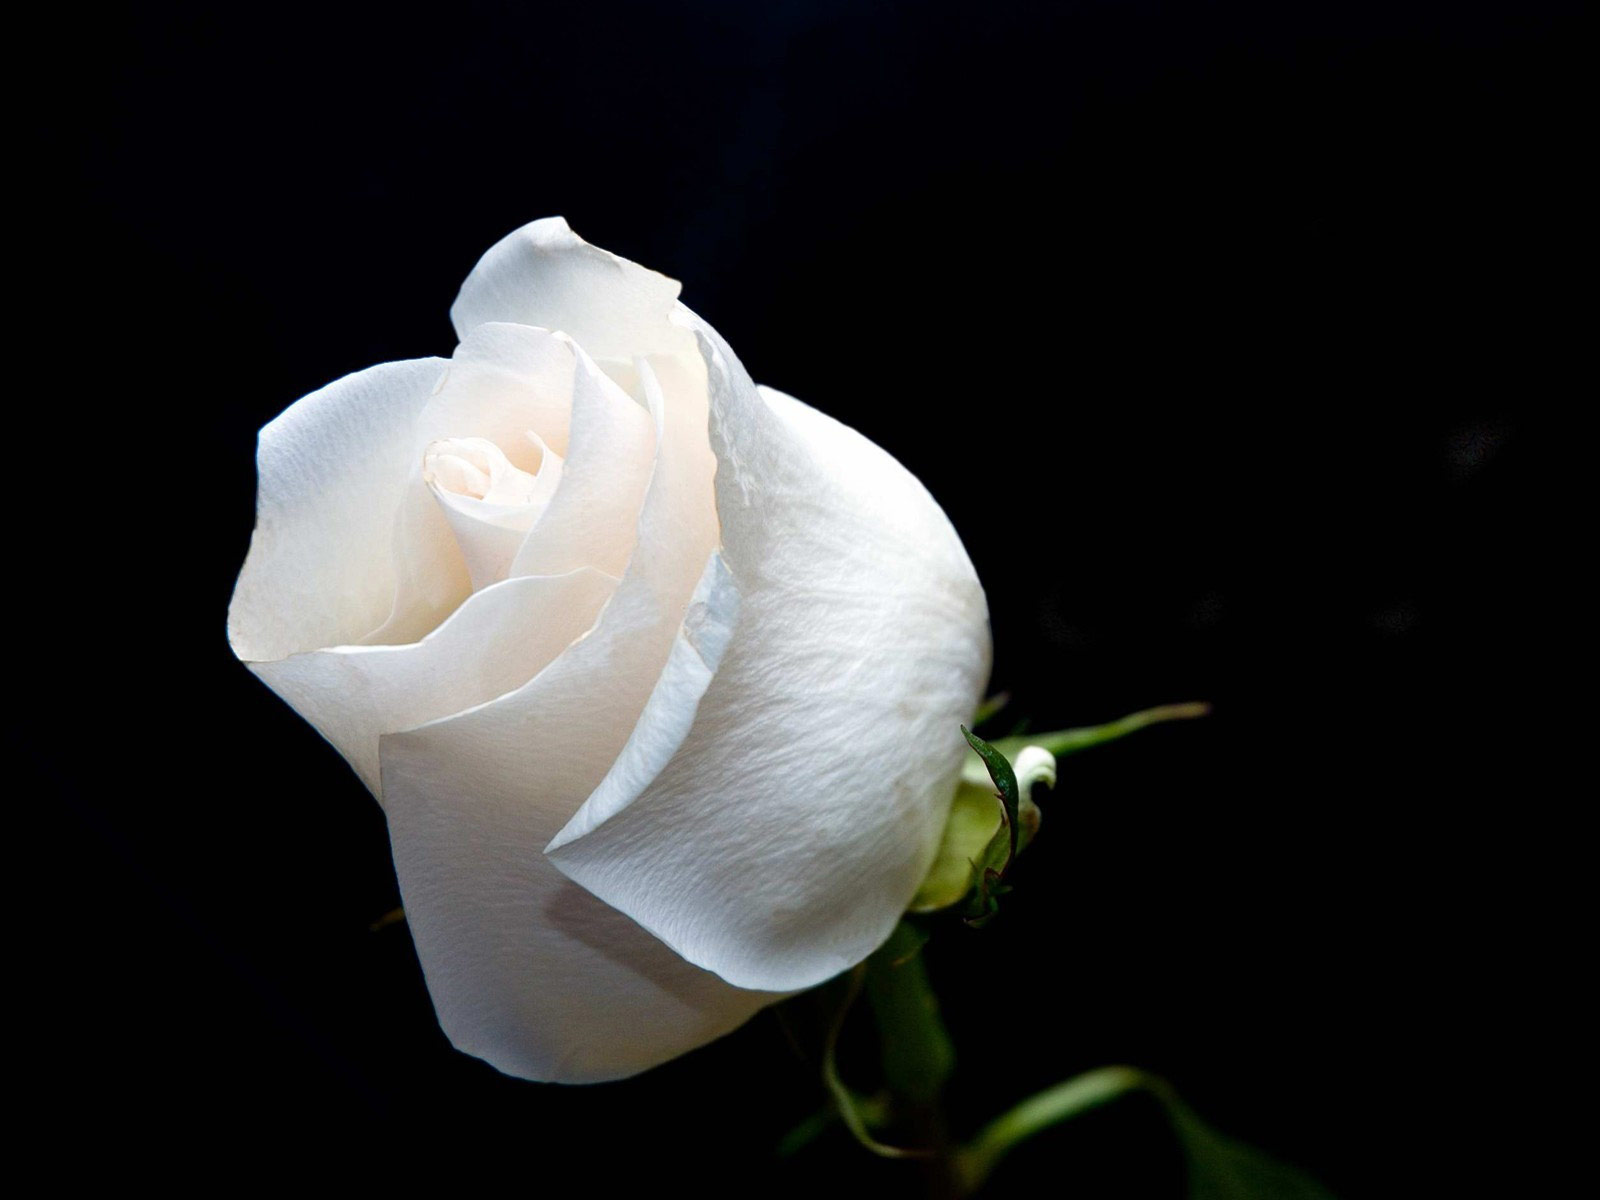 white rose wallpaper 10 desktop background - hdflowerwallpaper